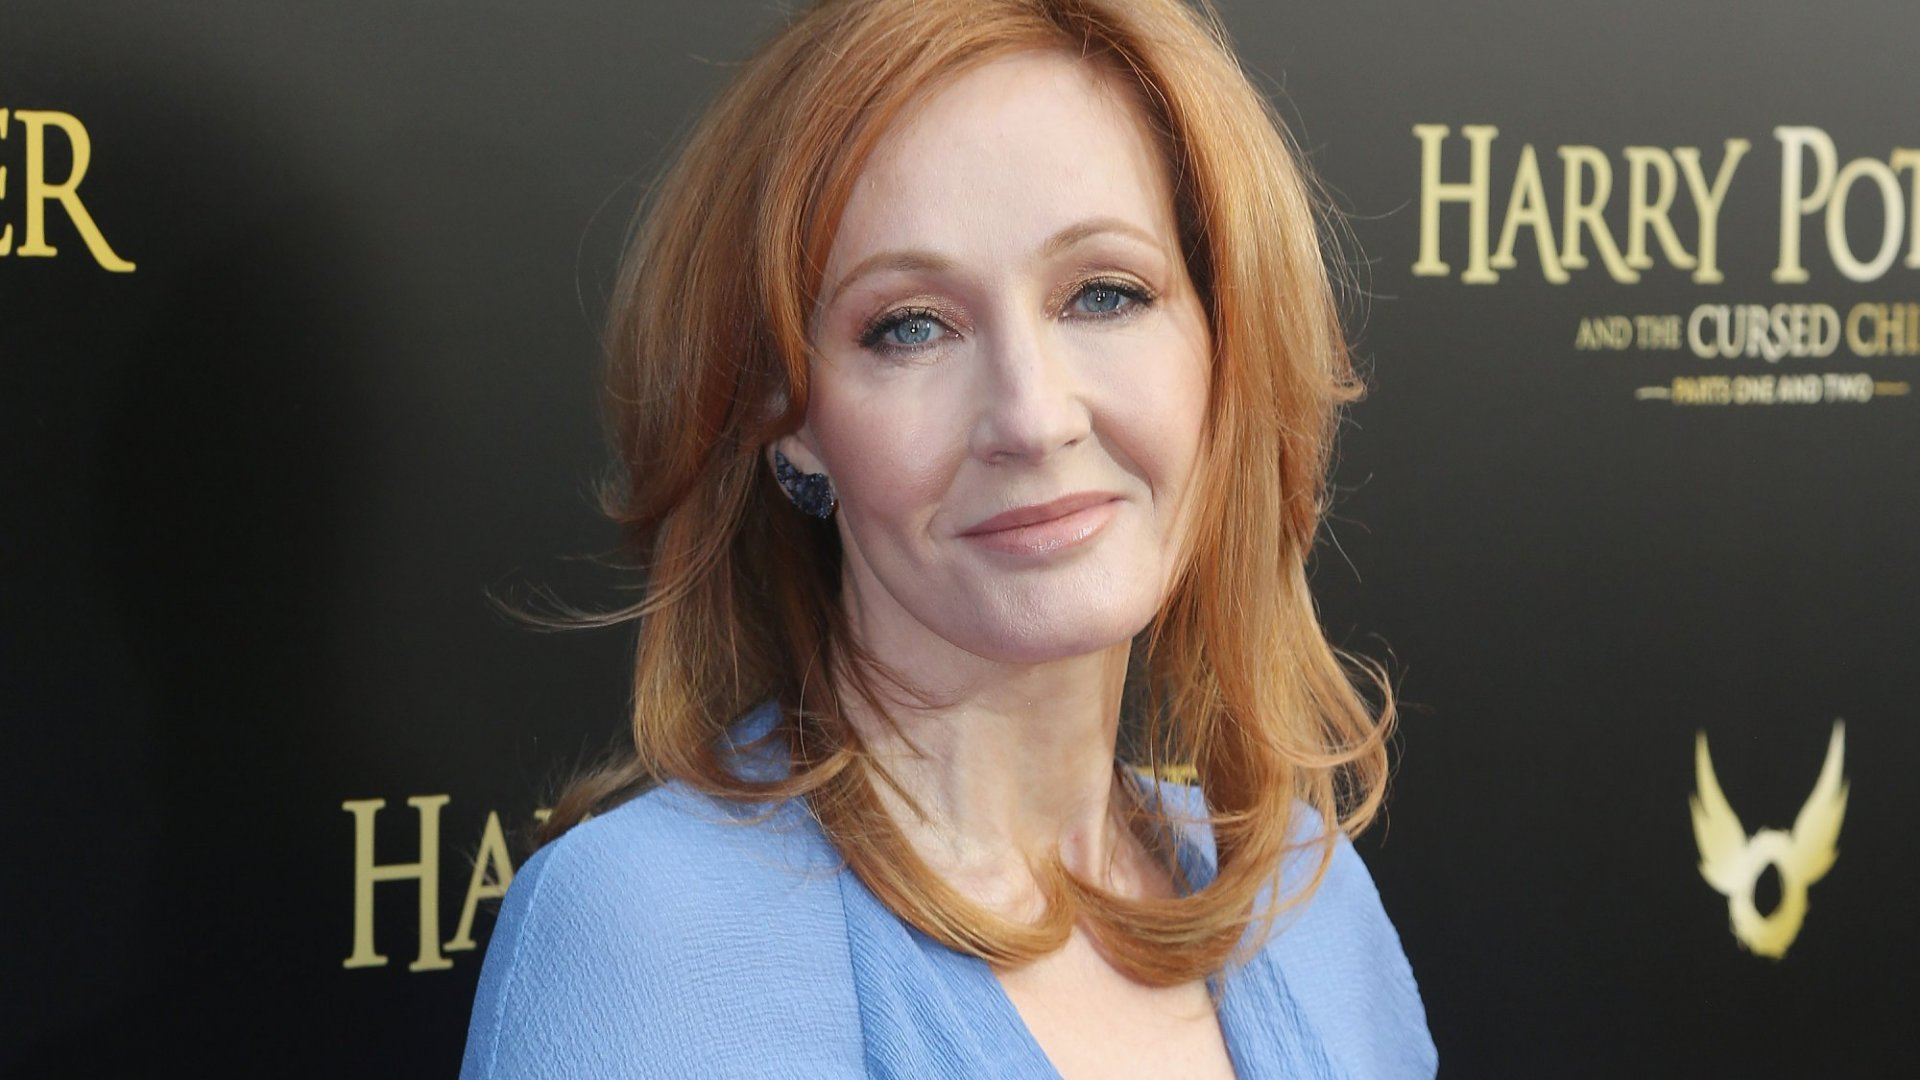 Want to Be a Great Writer? J.K. Rowling's Best Advice, Summed Up In Just 1 Sentence